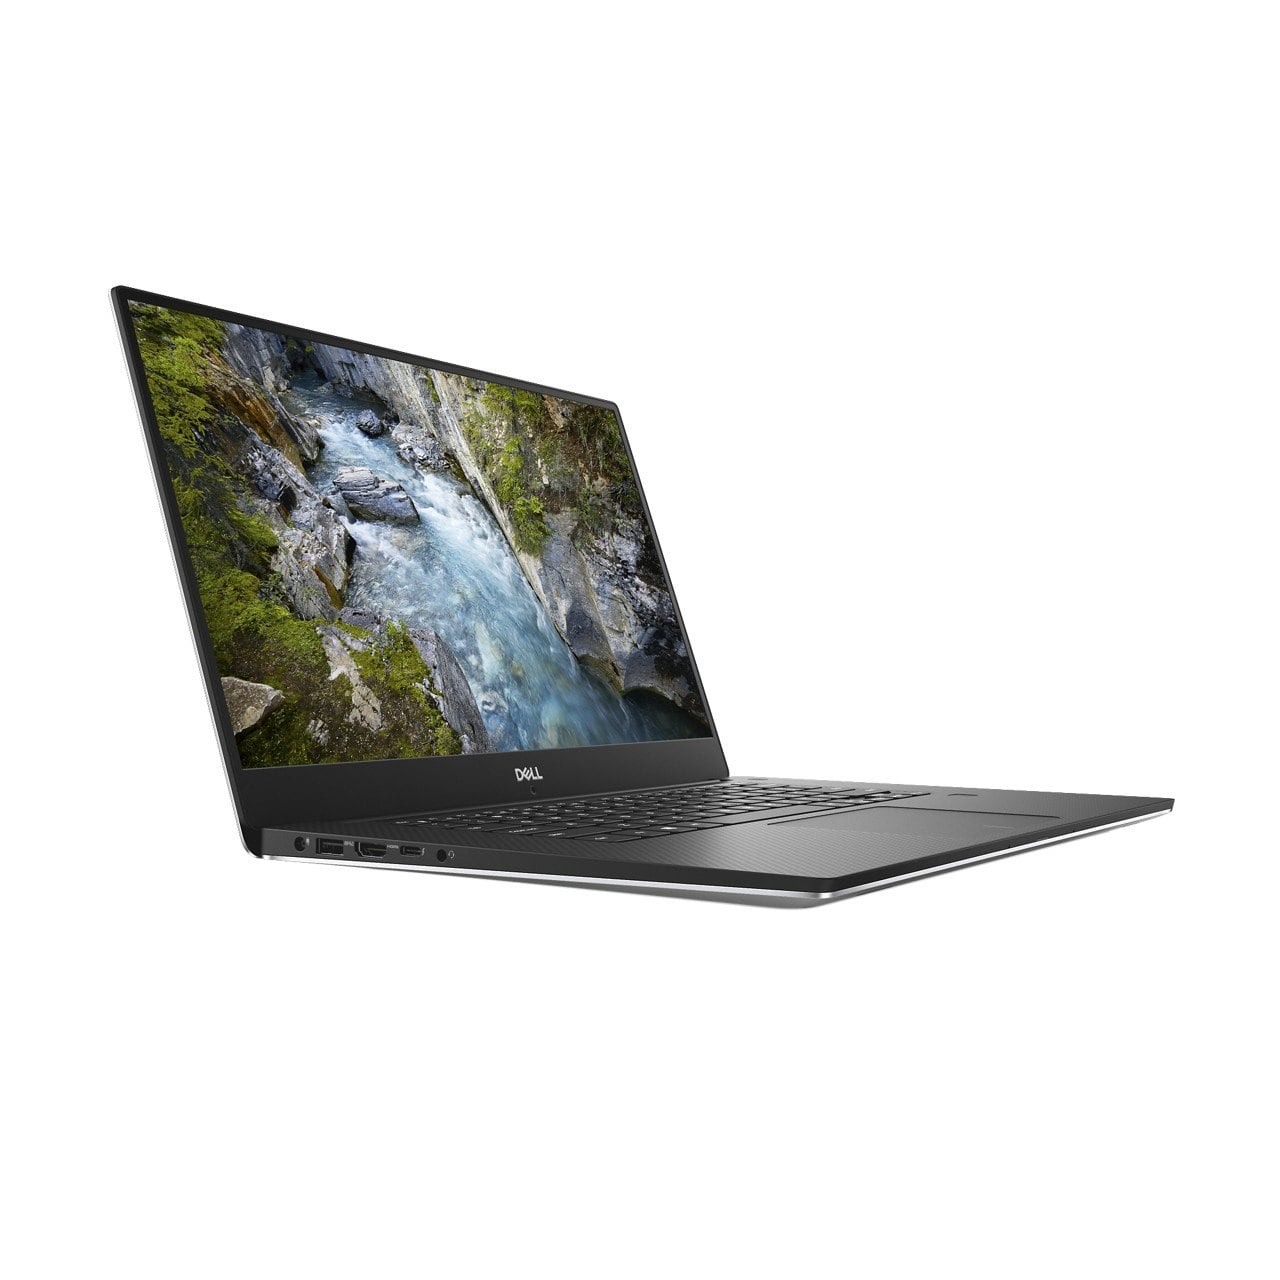 Dell XPS 15 9570 Laptop: i7-8750H, 16GB DDR4, 512GB SSD